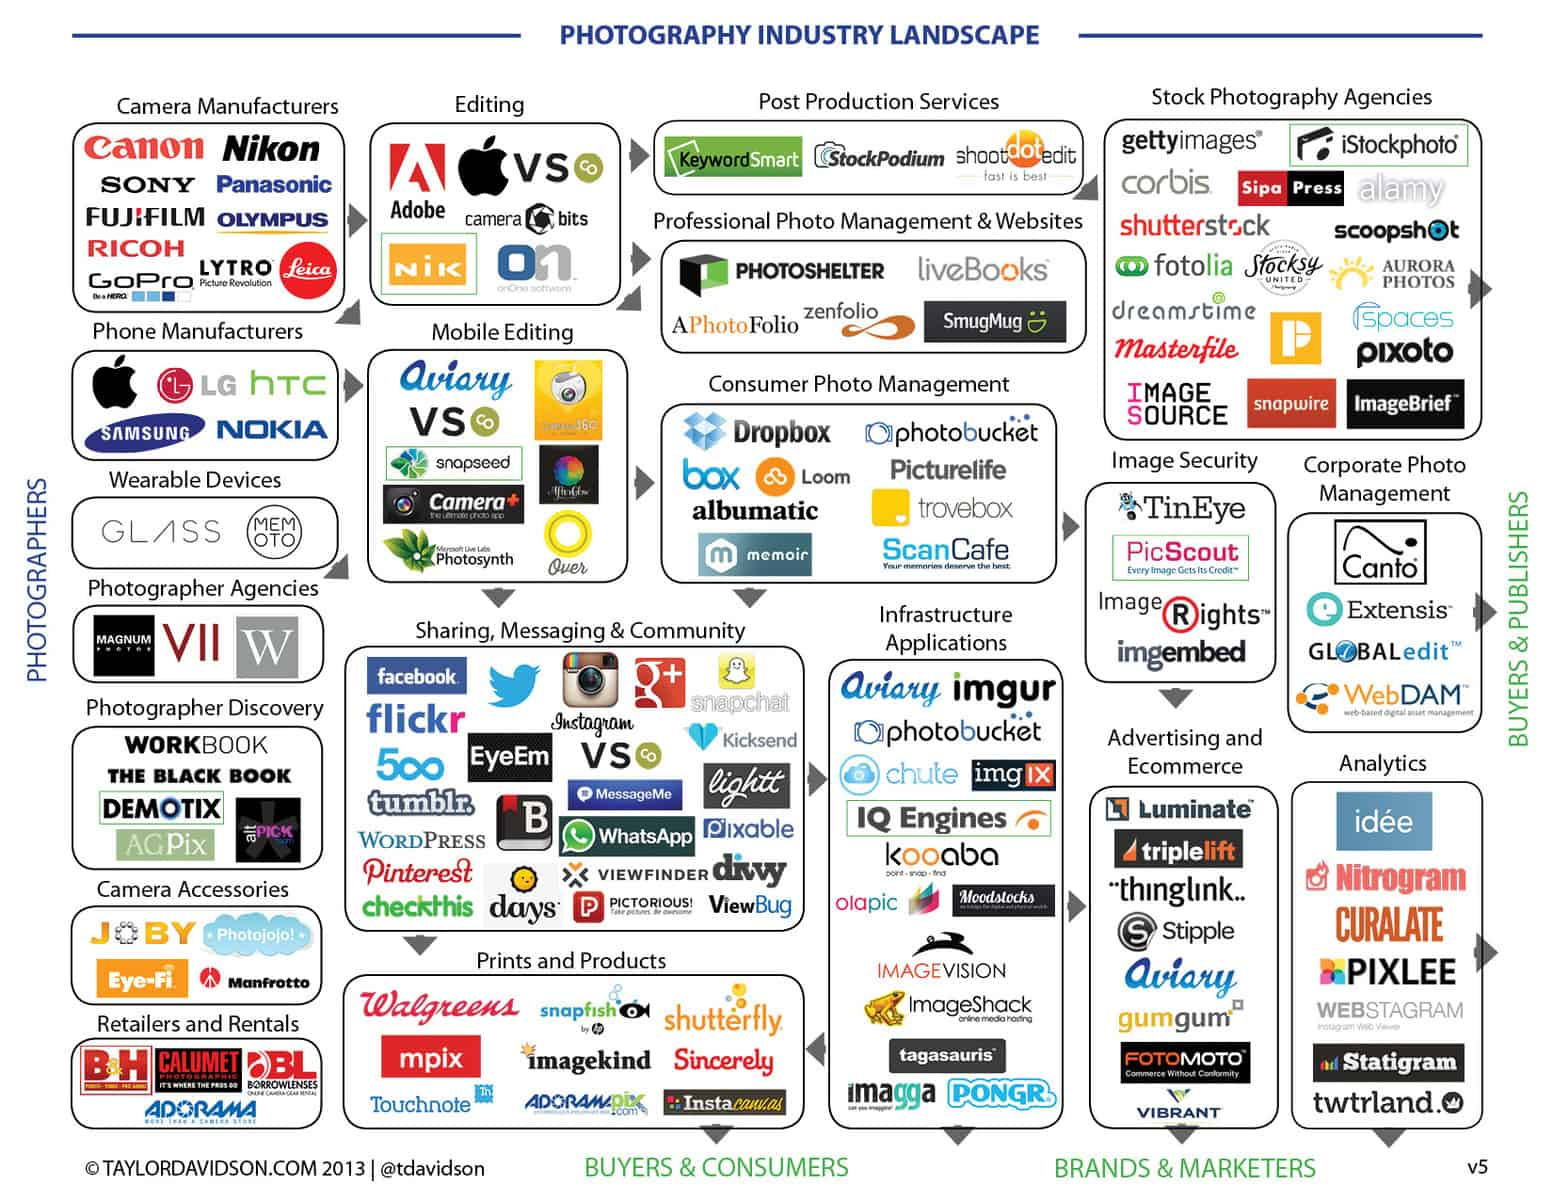 The Photography Industry Landscape by Taylor Davidson